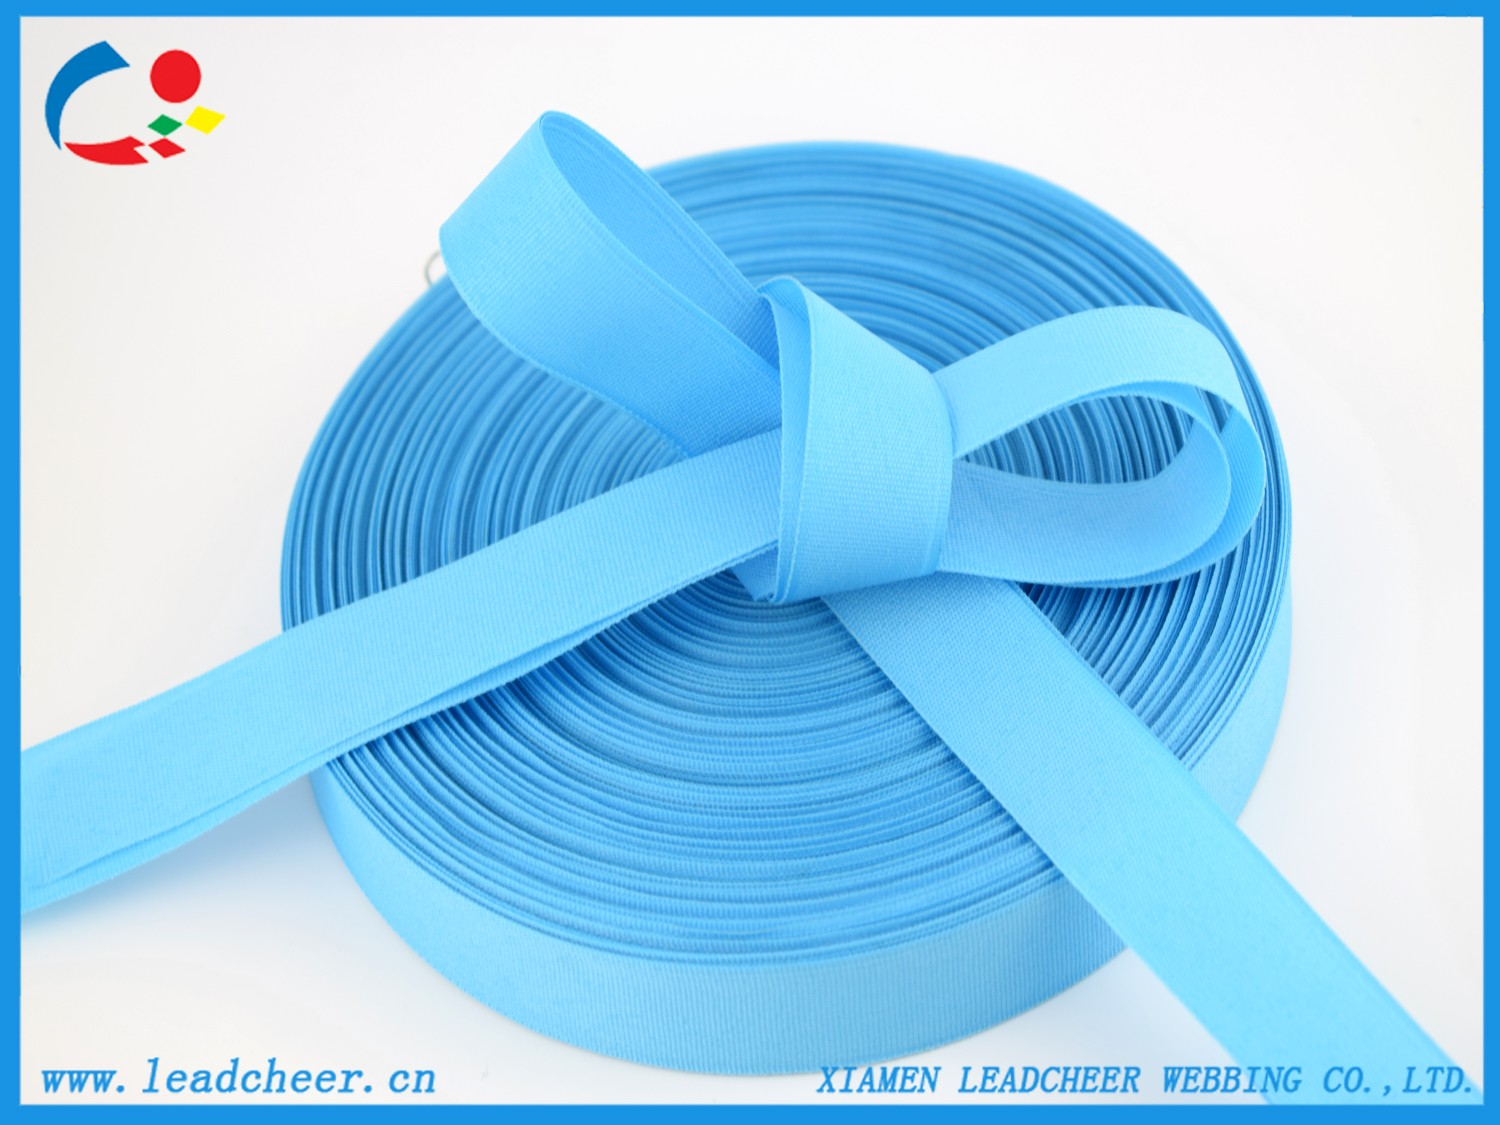 High quality Binding Webbing For Garments Quotes,China Binding Webbing For Garments Factory,Binding Webbing For Garments Purchasing